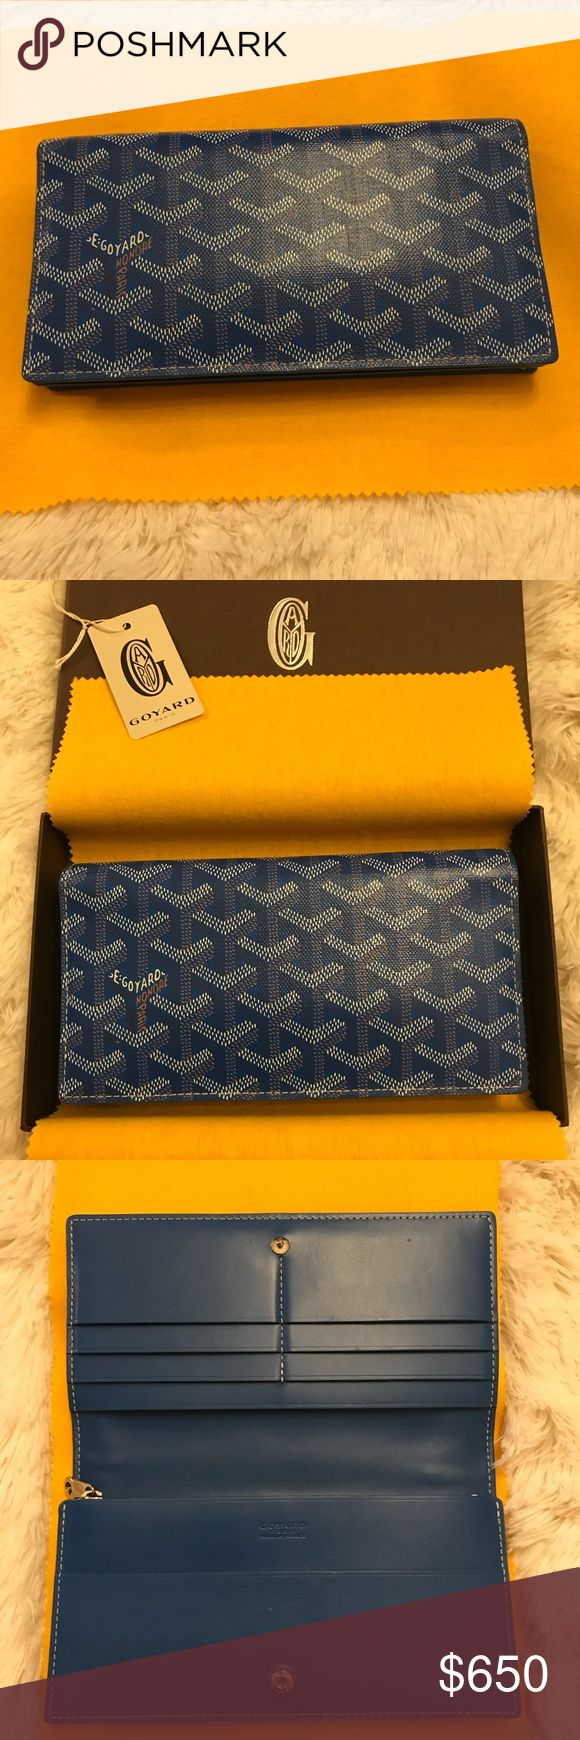 Goyard Electric Blue Wallet - Excellent Condition Beautiful electric blue Goyard Wallet with snap closure.  Has 6 credit card slots, one large pocket, zippered section and two small pockest.  Purchased April 2017 from Miami Maison Goyard store.  Very gently carried.  Ships with Goyard box and dust cloth.   Style name is Portefeville Richelieu 2.  Open to reasonable offers.  Will not sell outside of Poshmark site/app. Goyard Bags Wallets